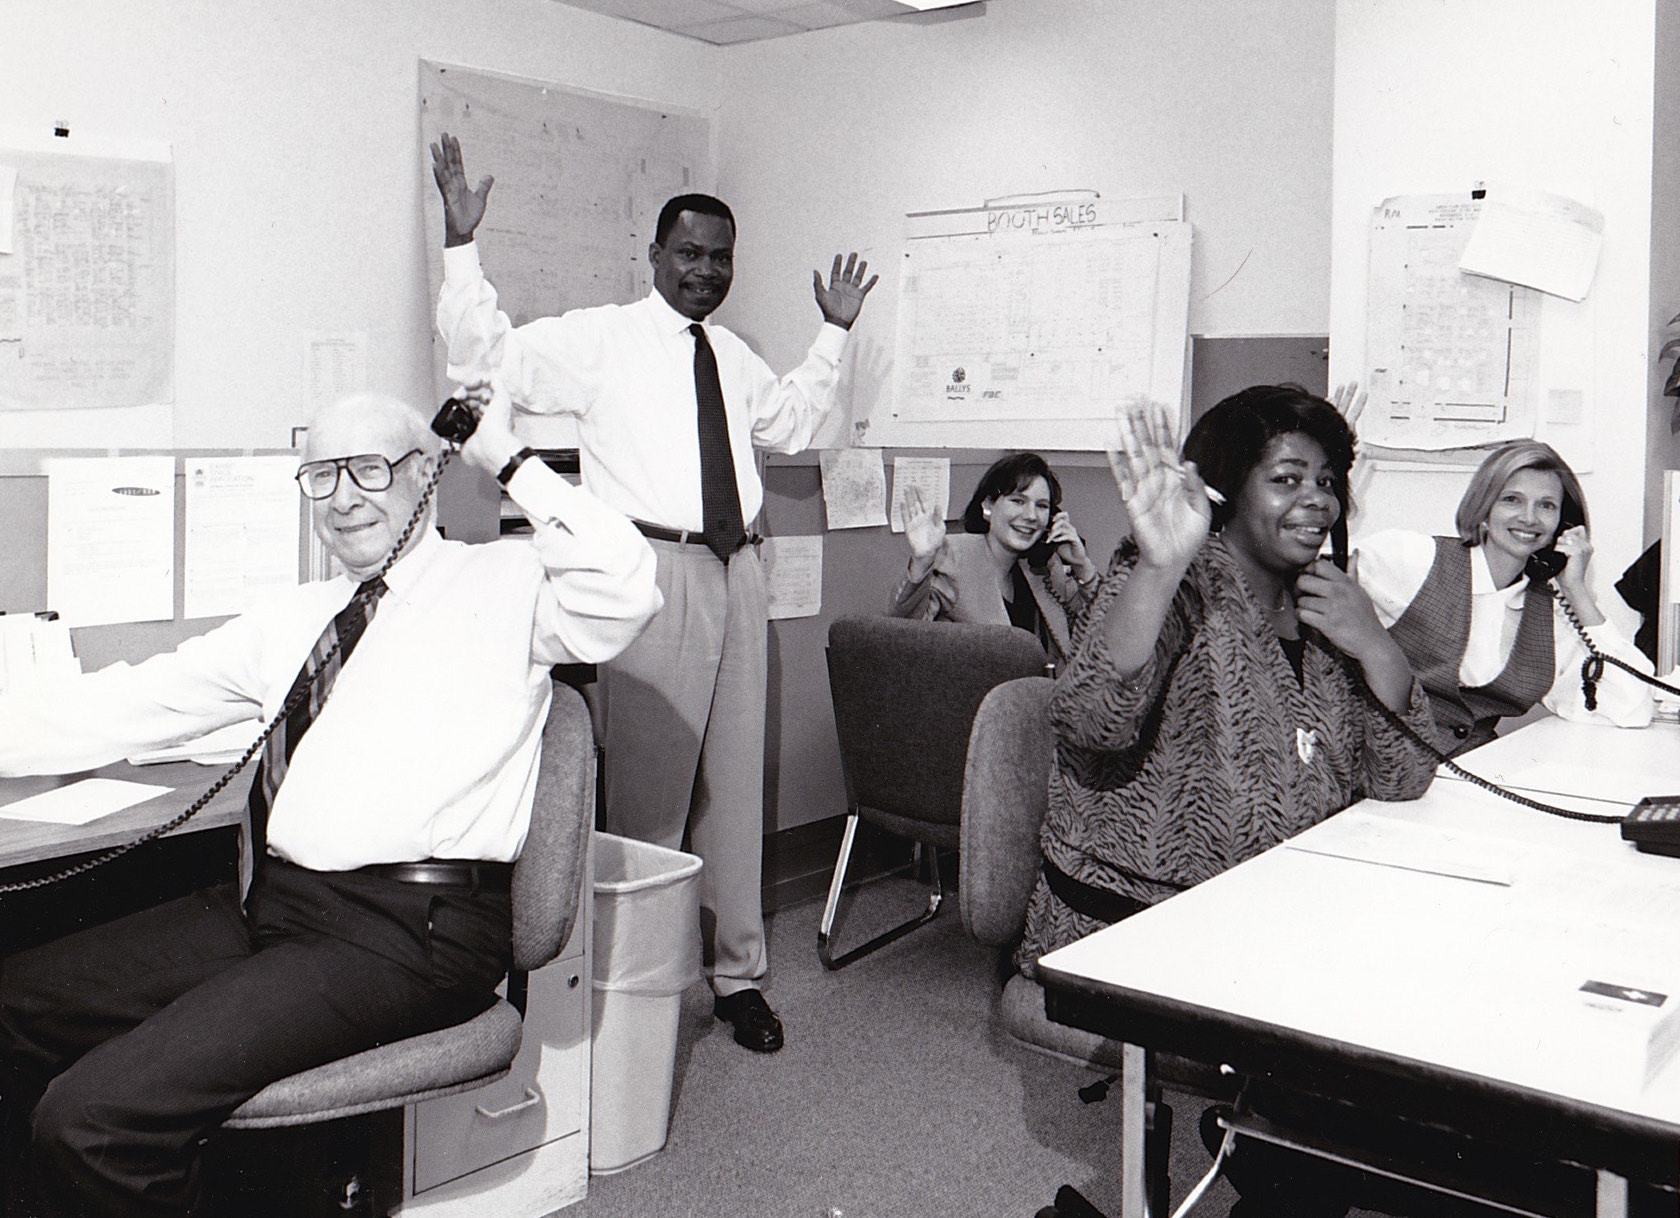 The Corcoran sales team busy selling booths in 1994. Pictured:(L to R) Ward Gill, Cliff Ruffin, Jeanne Corcoran, Debbie Corcoran and Karen Gaines.